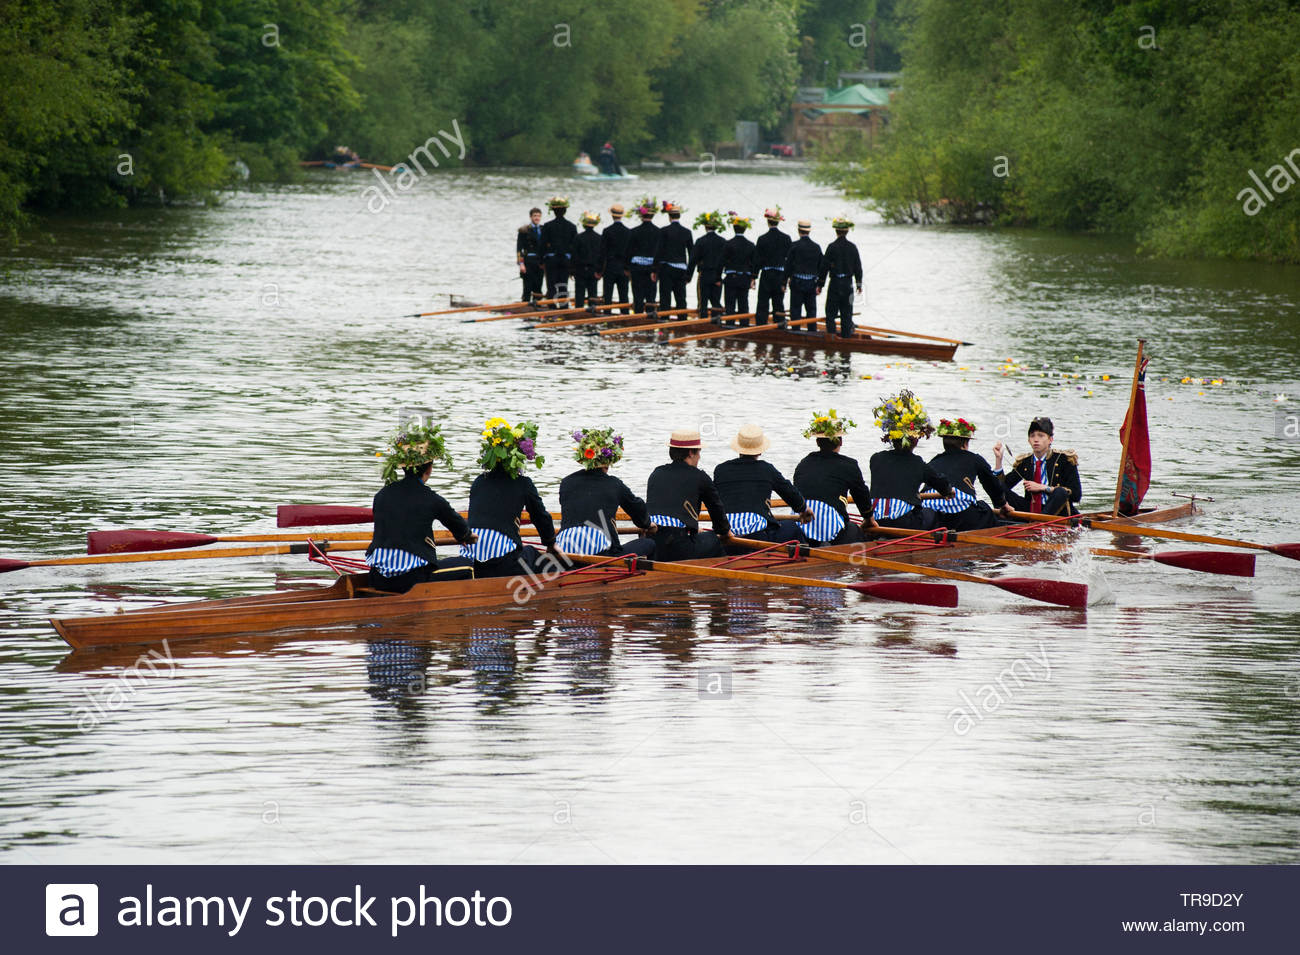 Annual Eton College Procession of Boats ceremony on the River Thames. - Stock Image